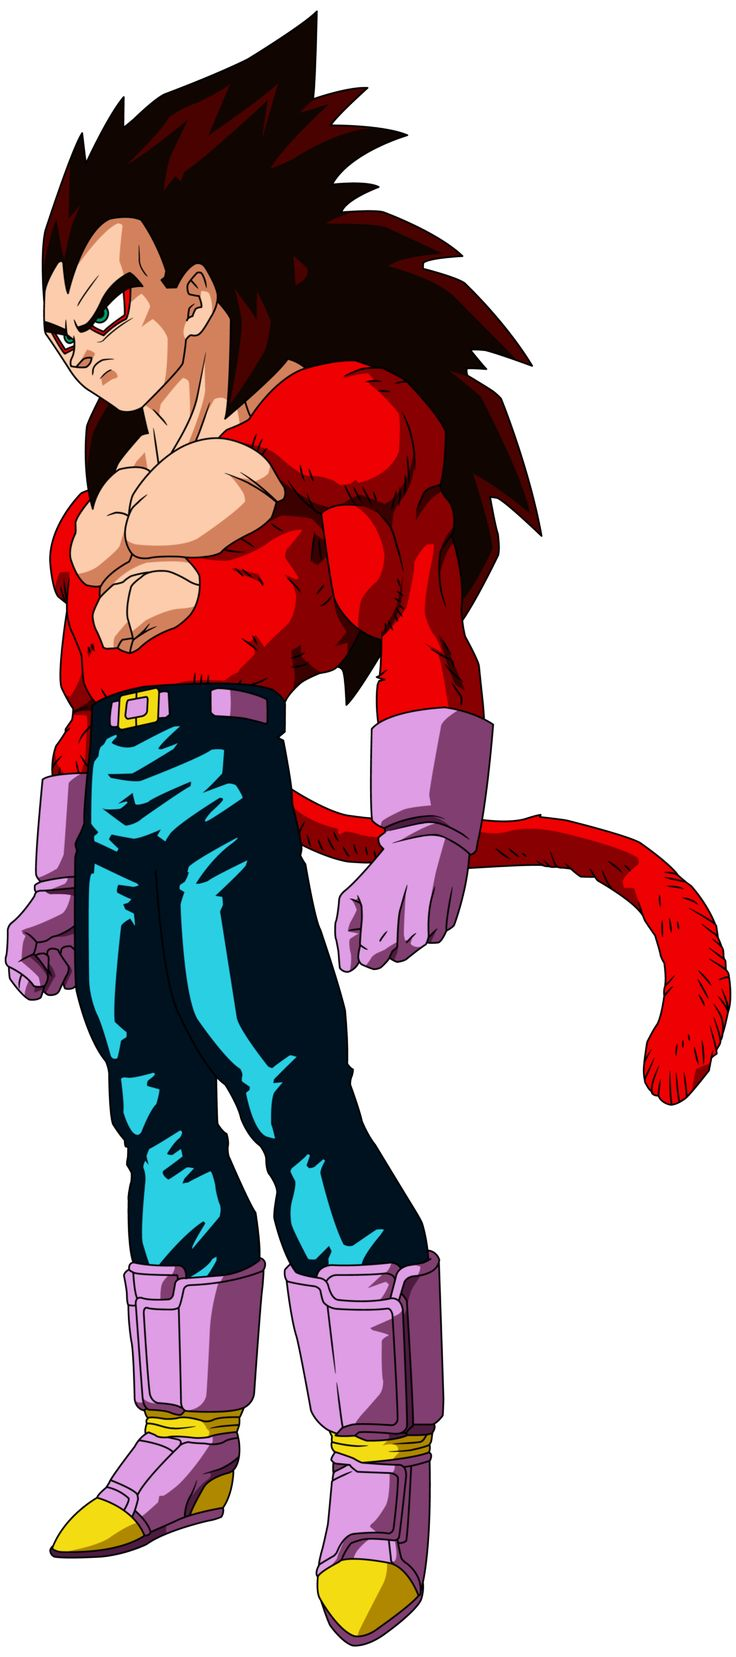 Vegeta ssj 4 by maffo1989.deviantart.com on @deviantART